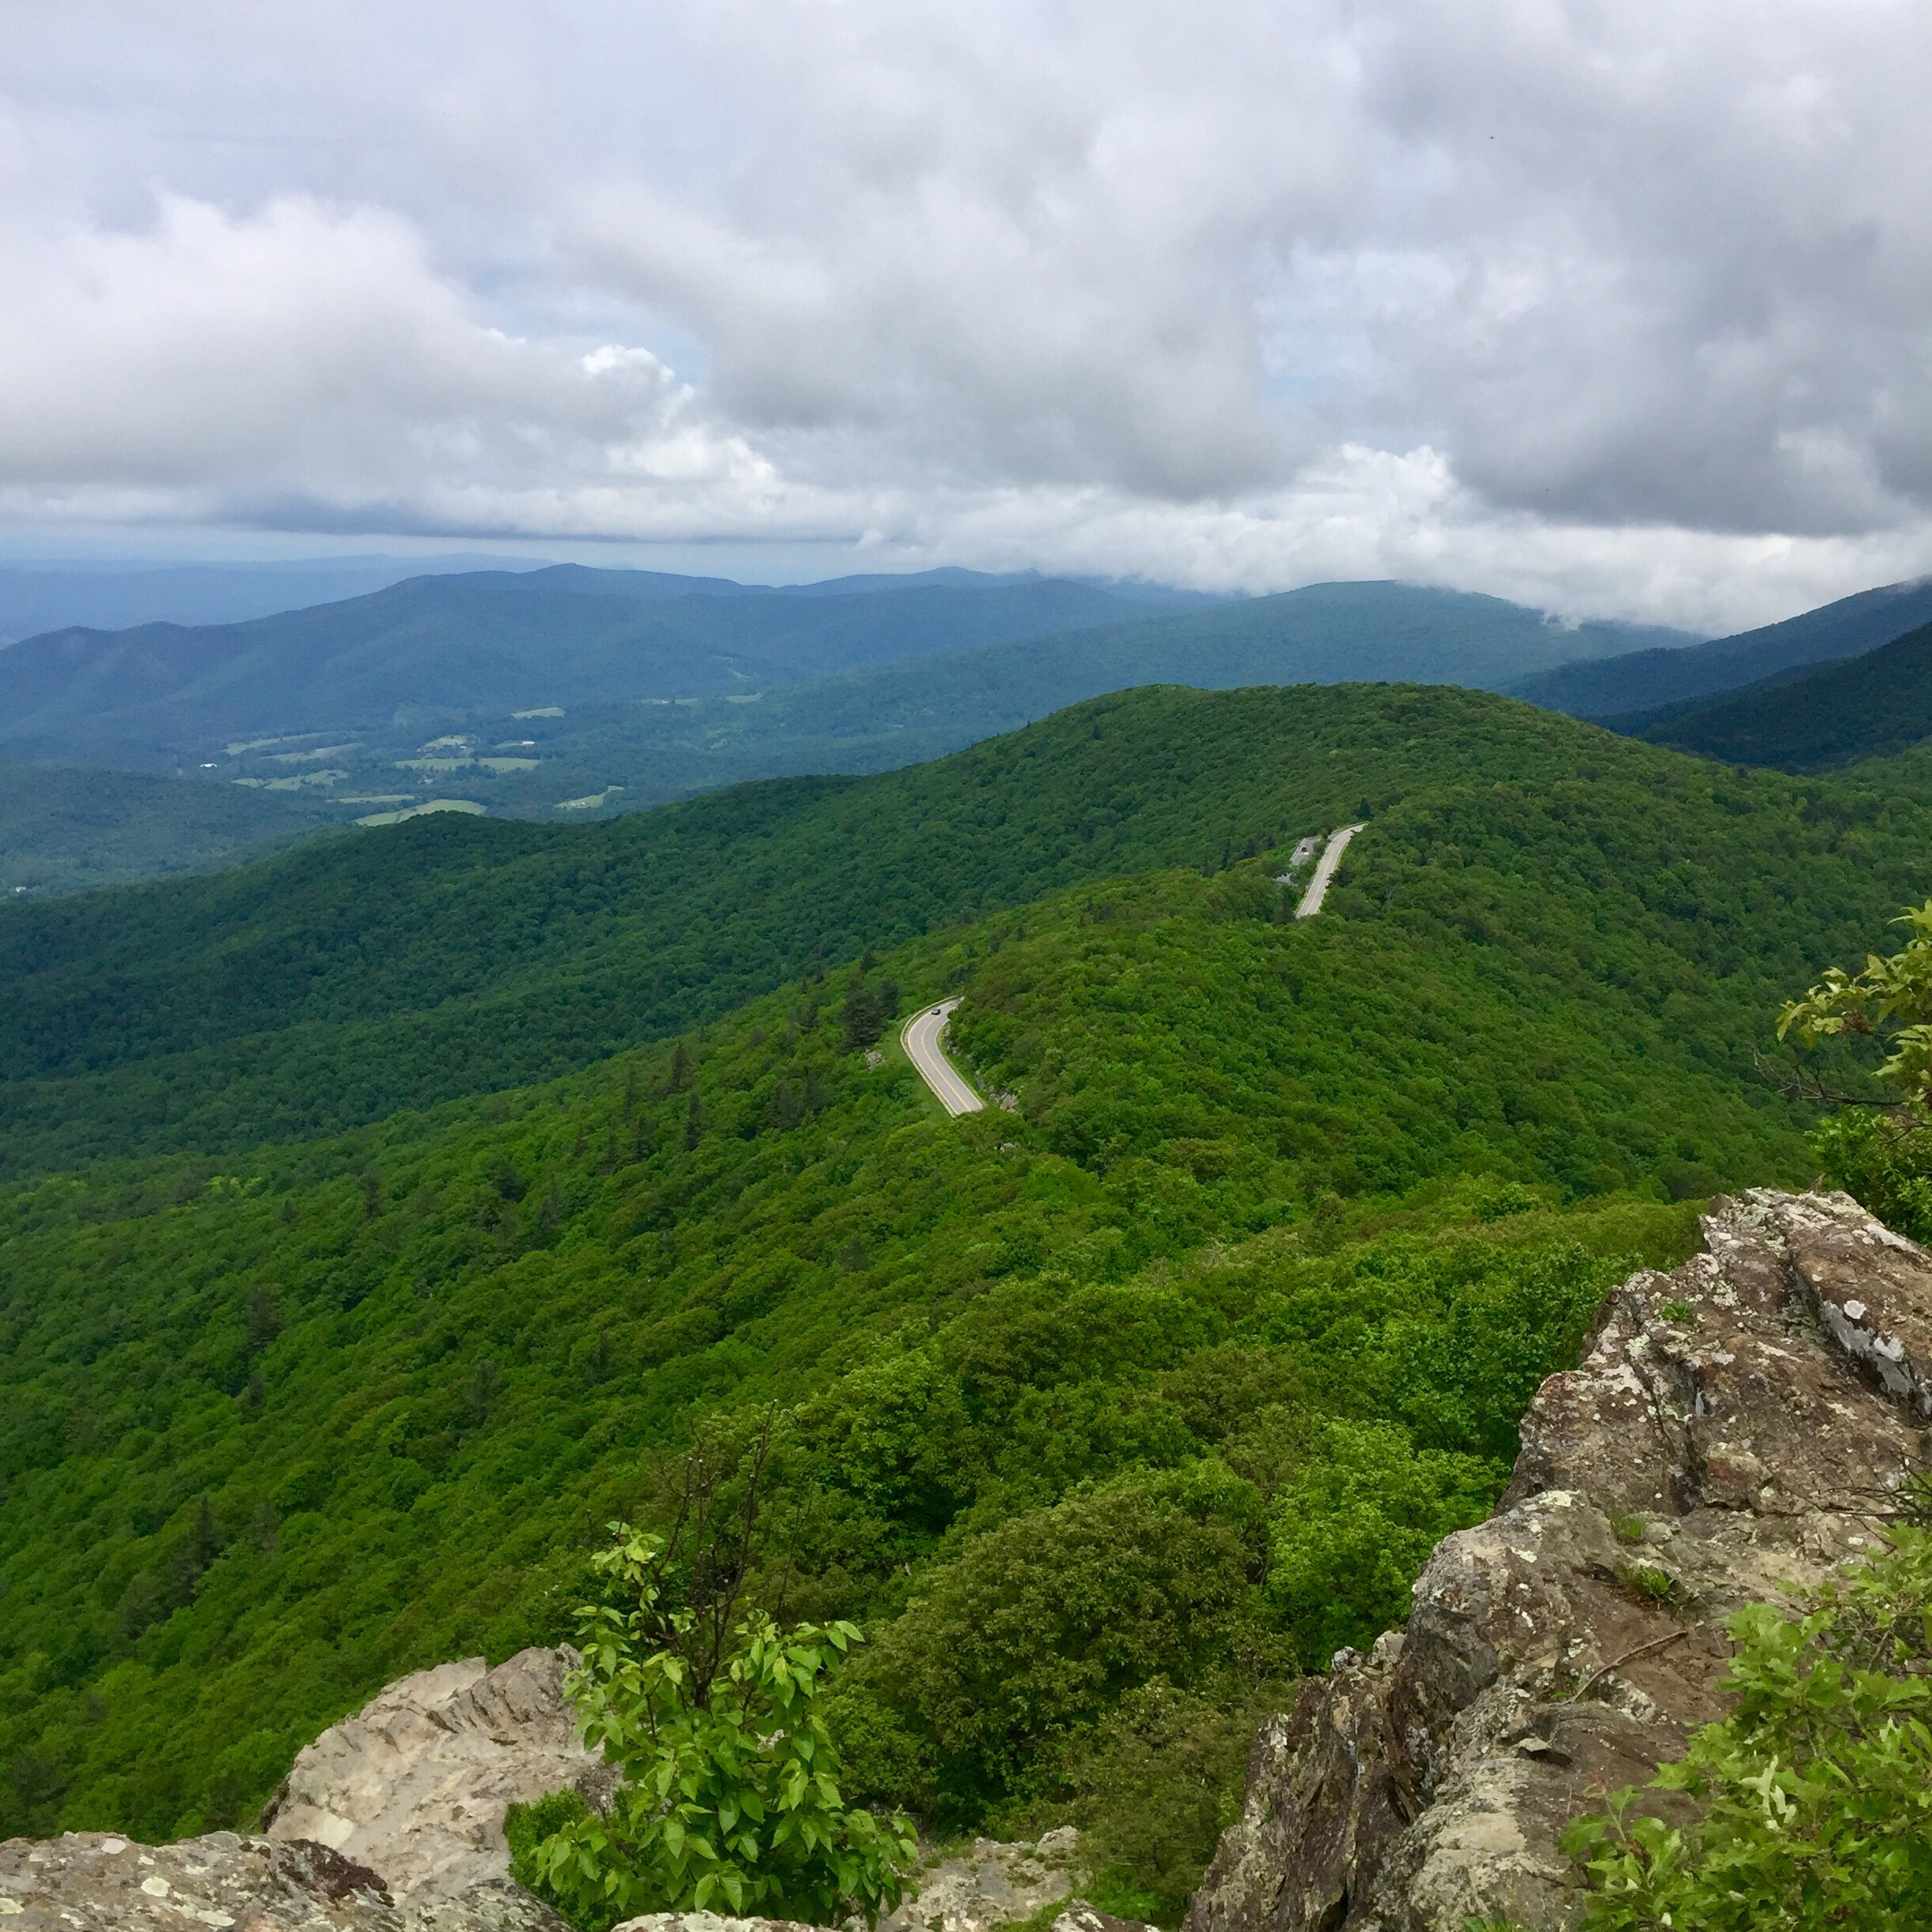 Hiking Through Shenandoah National Park